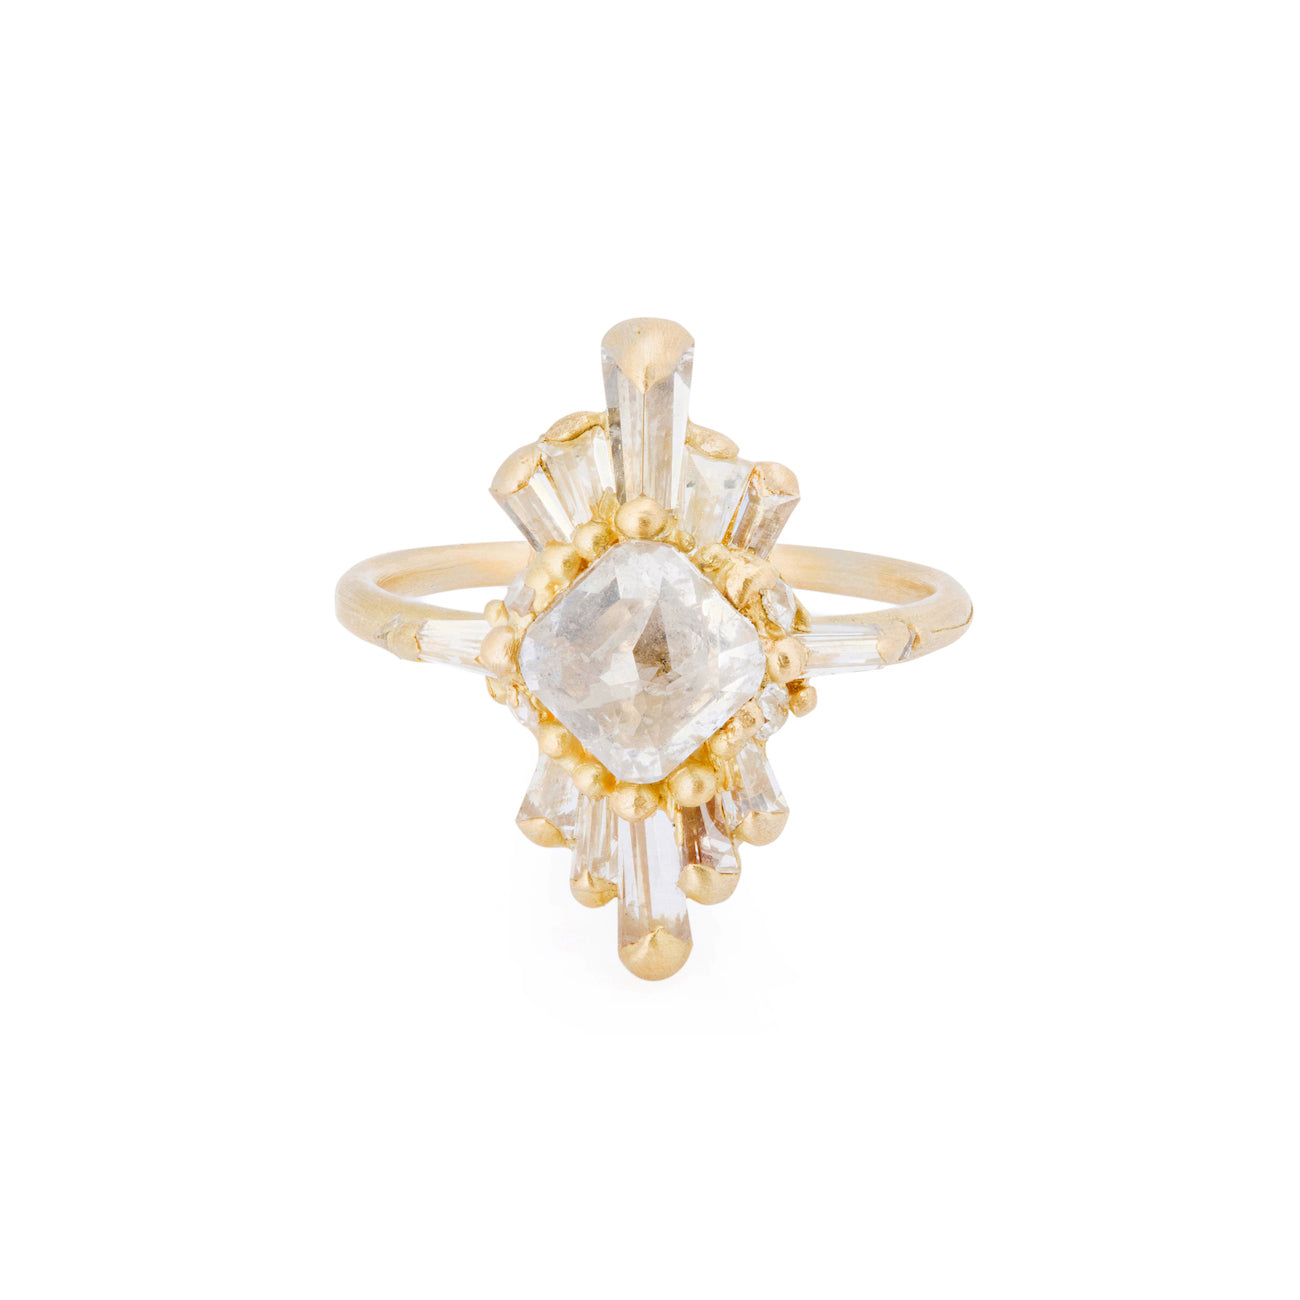 Phaedra Halo Ring by Polly Wales for Broken English Jewelry